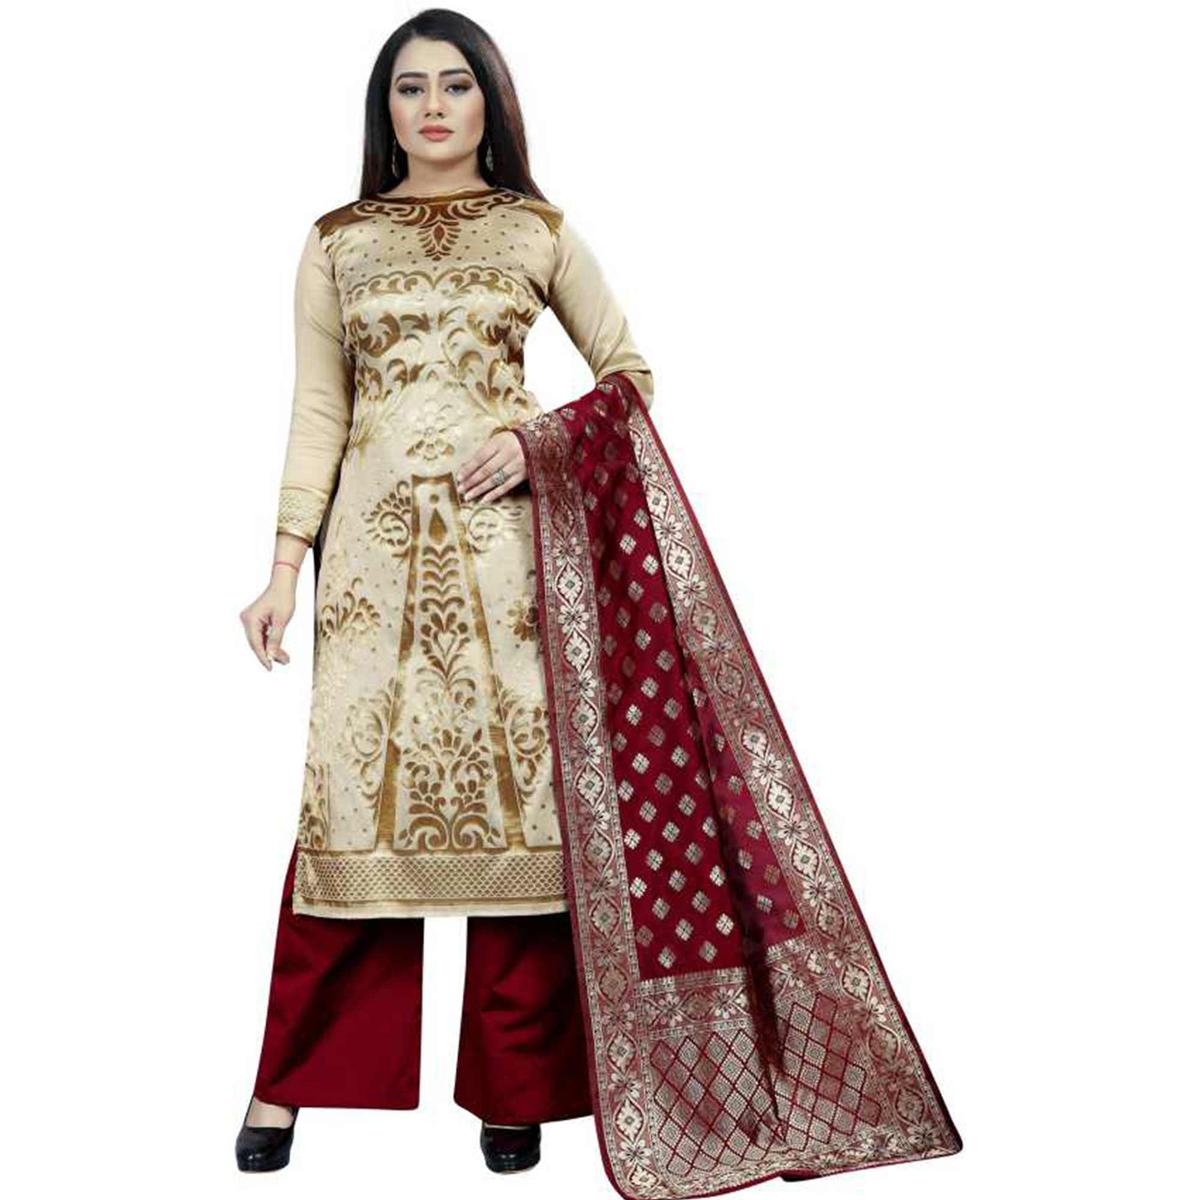 Radiant Beige Colored Casual Wear Woven Jacquard Silk Dress Material